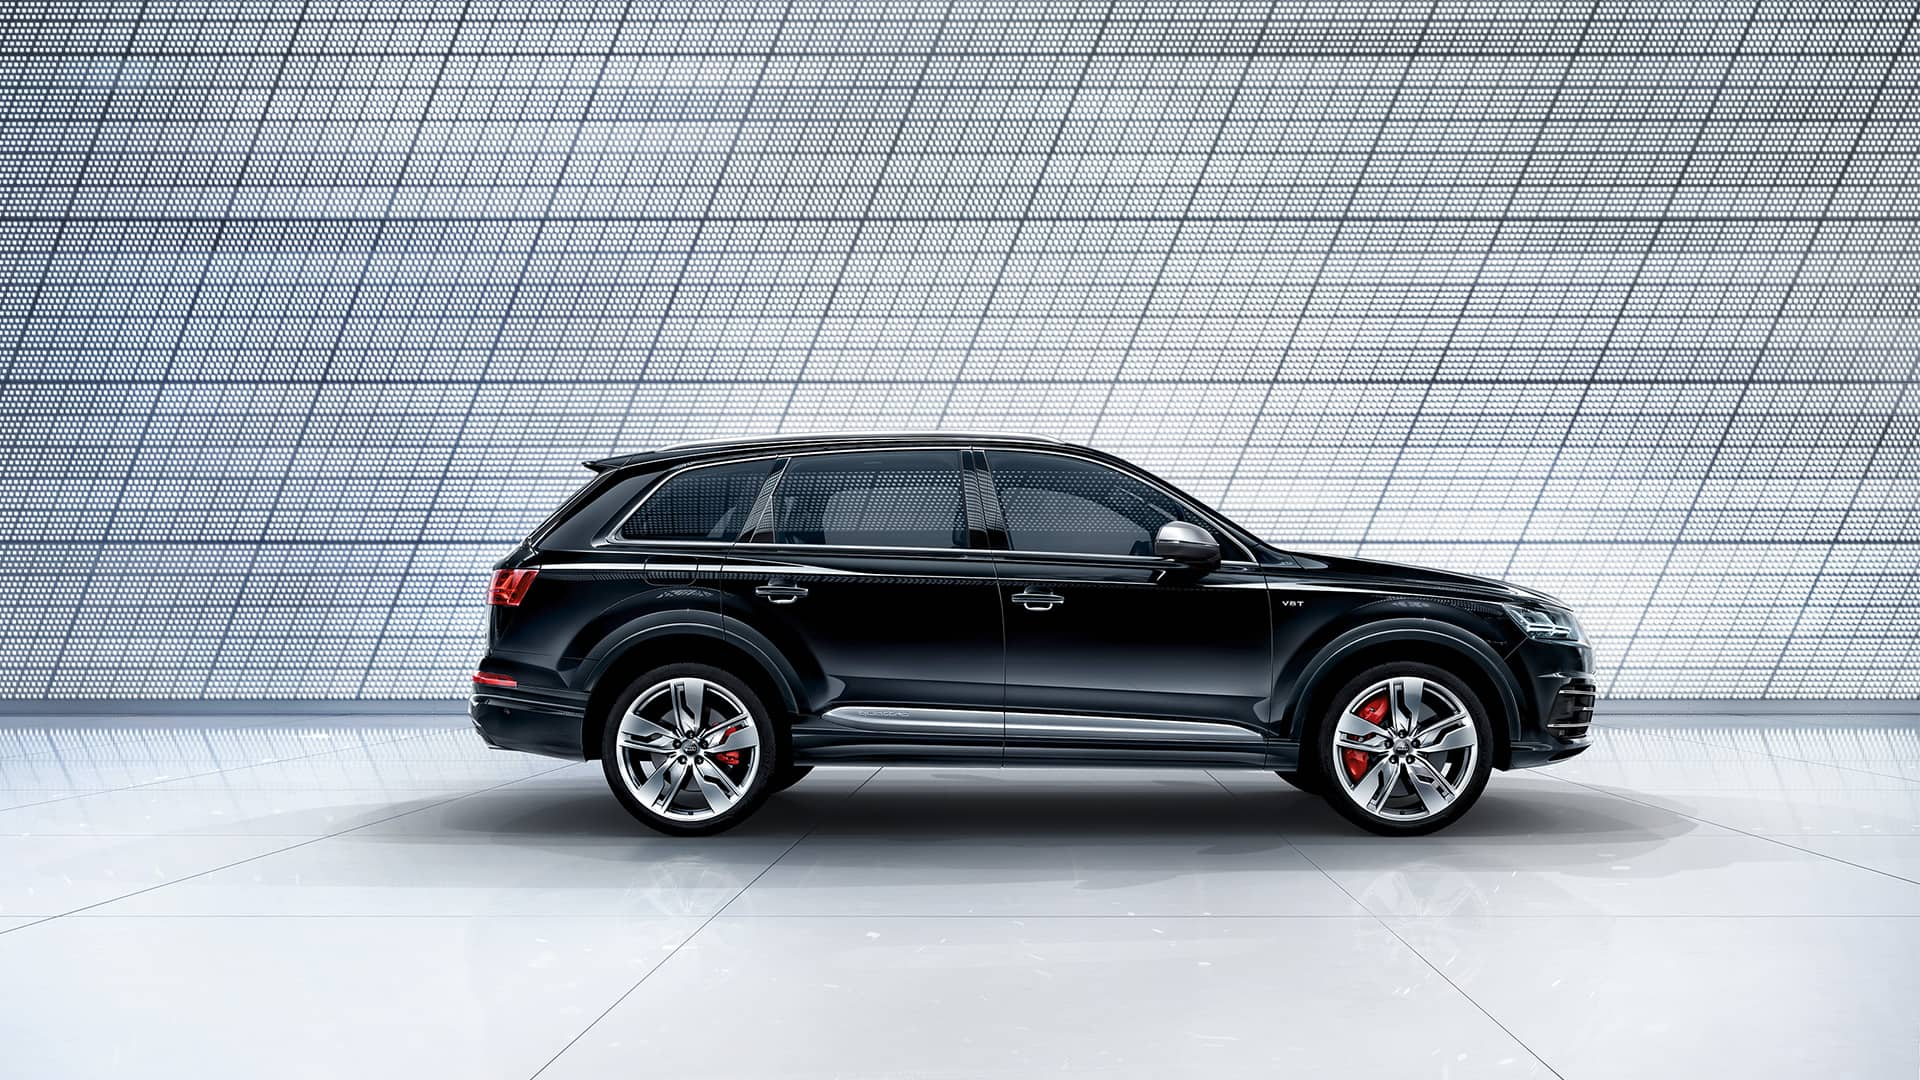 Audi SQ7 | Luxury 7-Seater SUV | Audi Australia > Q7 > Audi Australia Official Website | Luxury ...